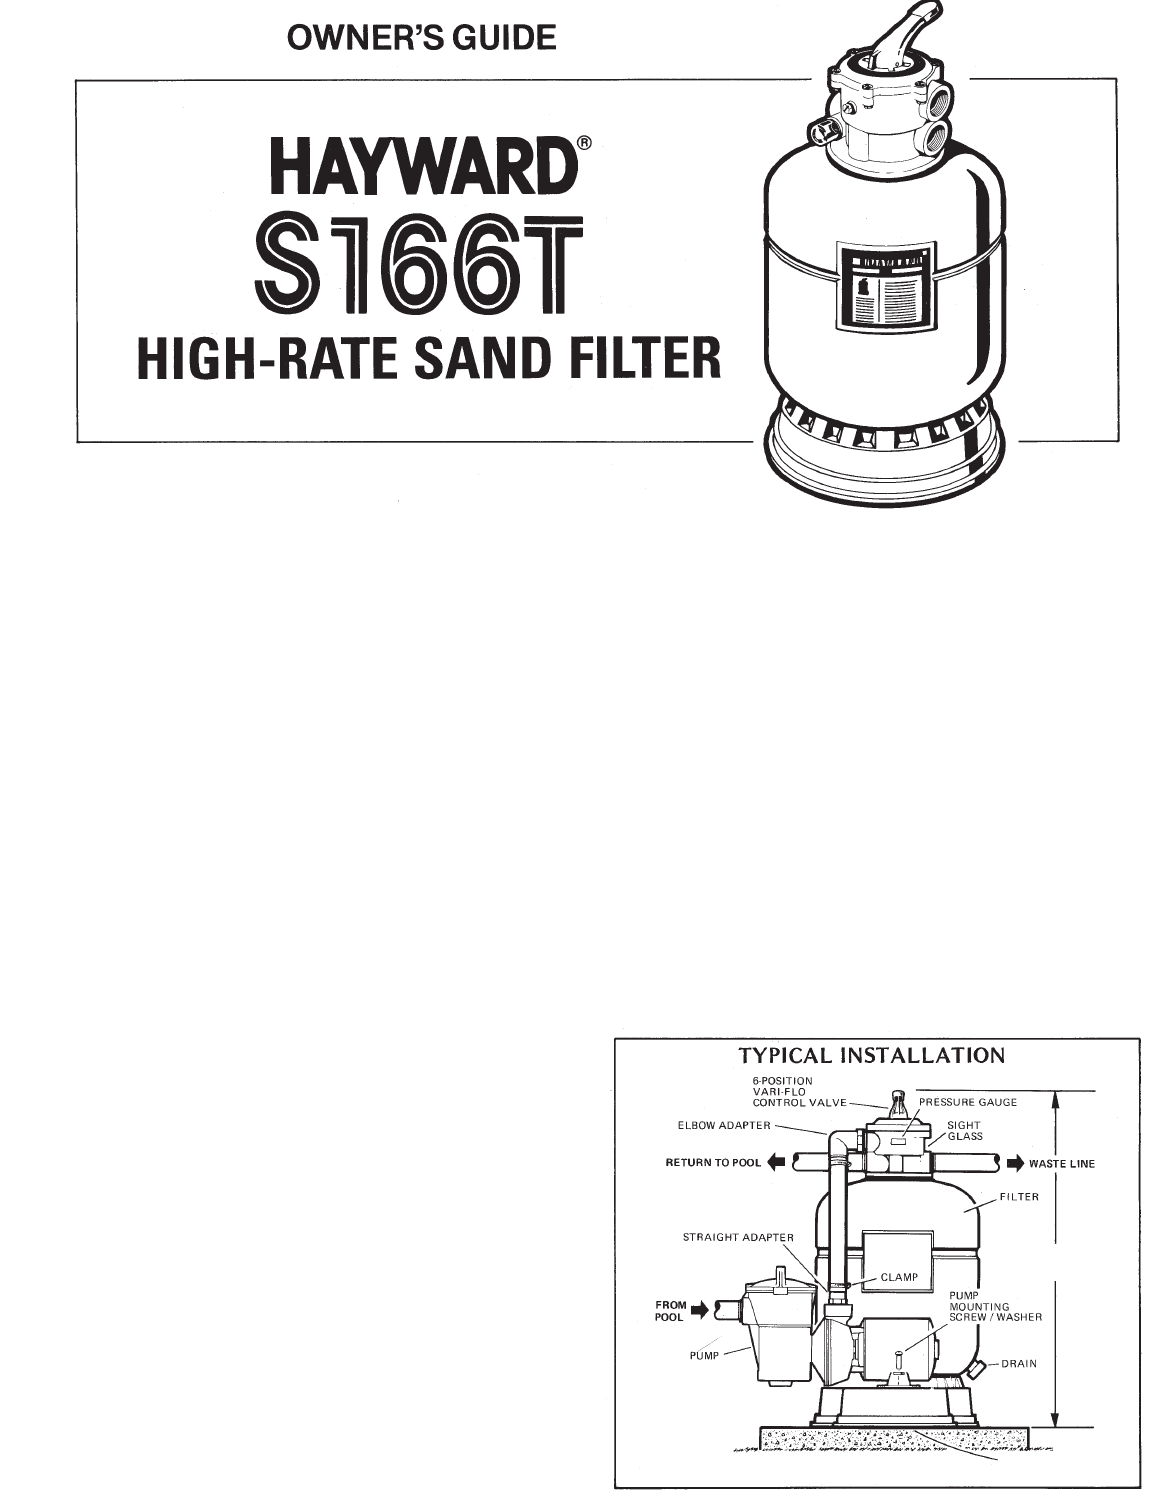 Hayward Pools Swimming Pool Filter S166T User Guide